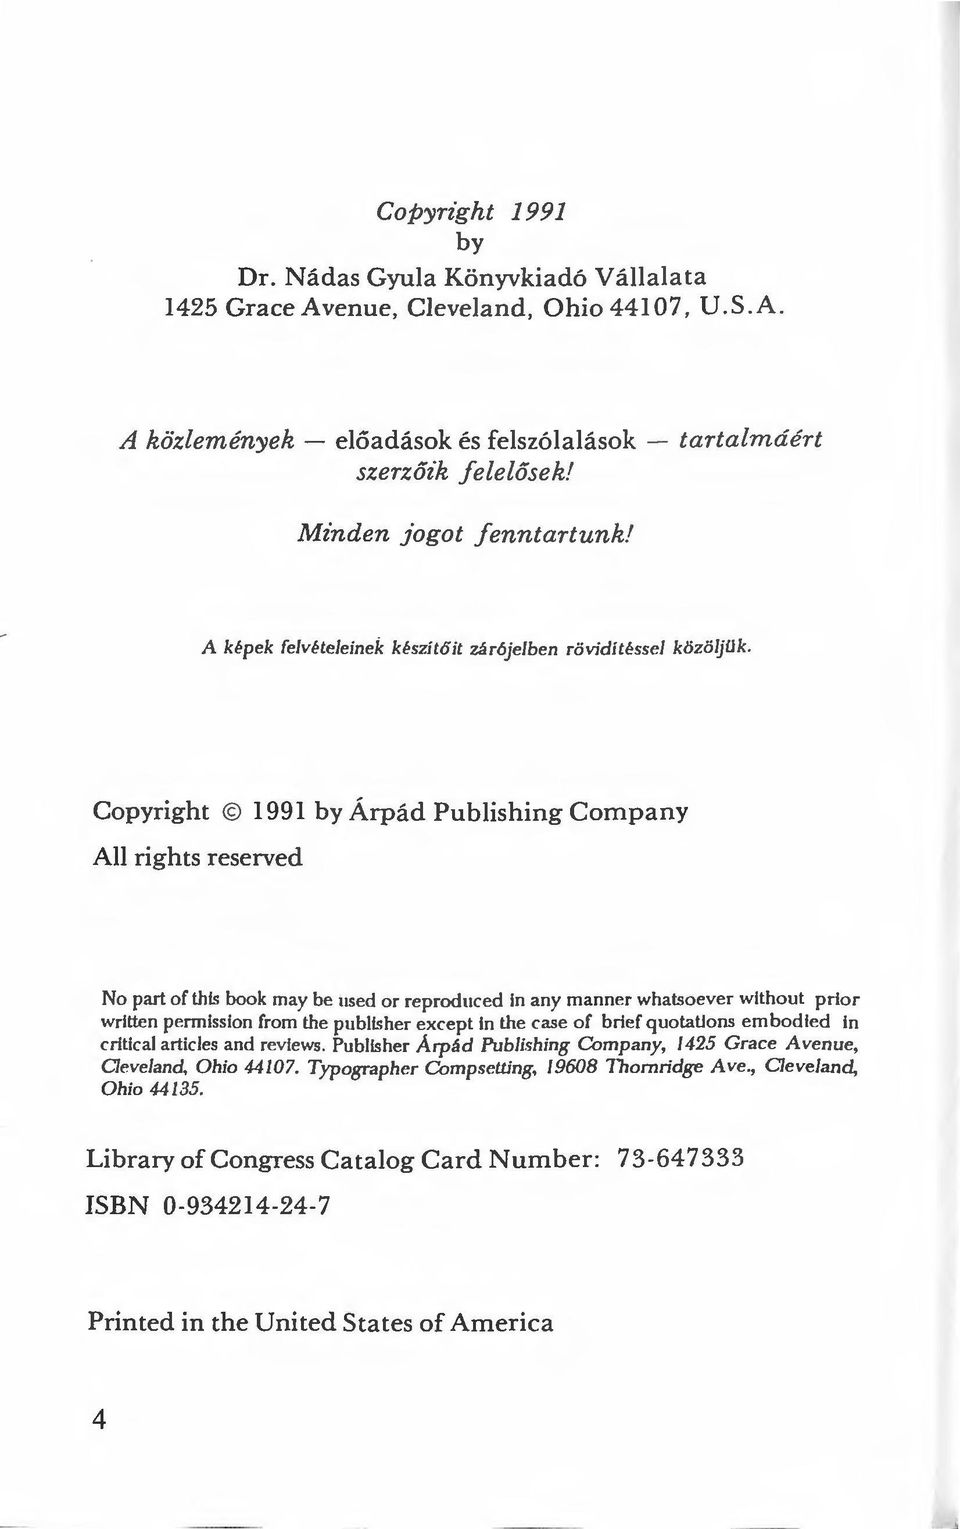 Copyright 1991 by Árpád Publishing Company Ali rights reserved No part of this book may be used or reproduced in any manner whatsoever wlthout prior wrltten permission from the publisher except ln